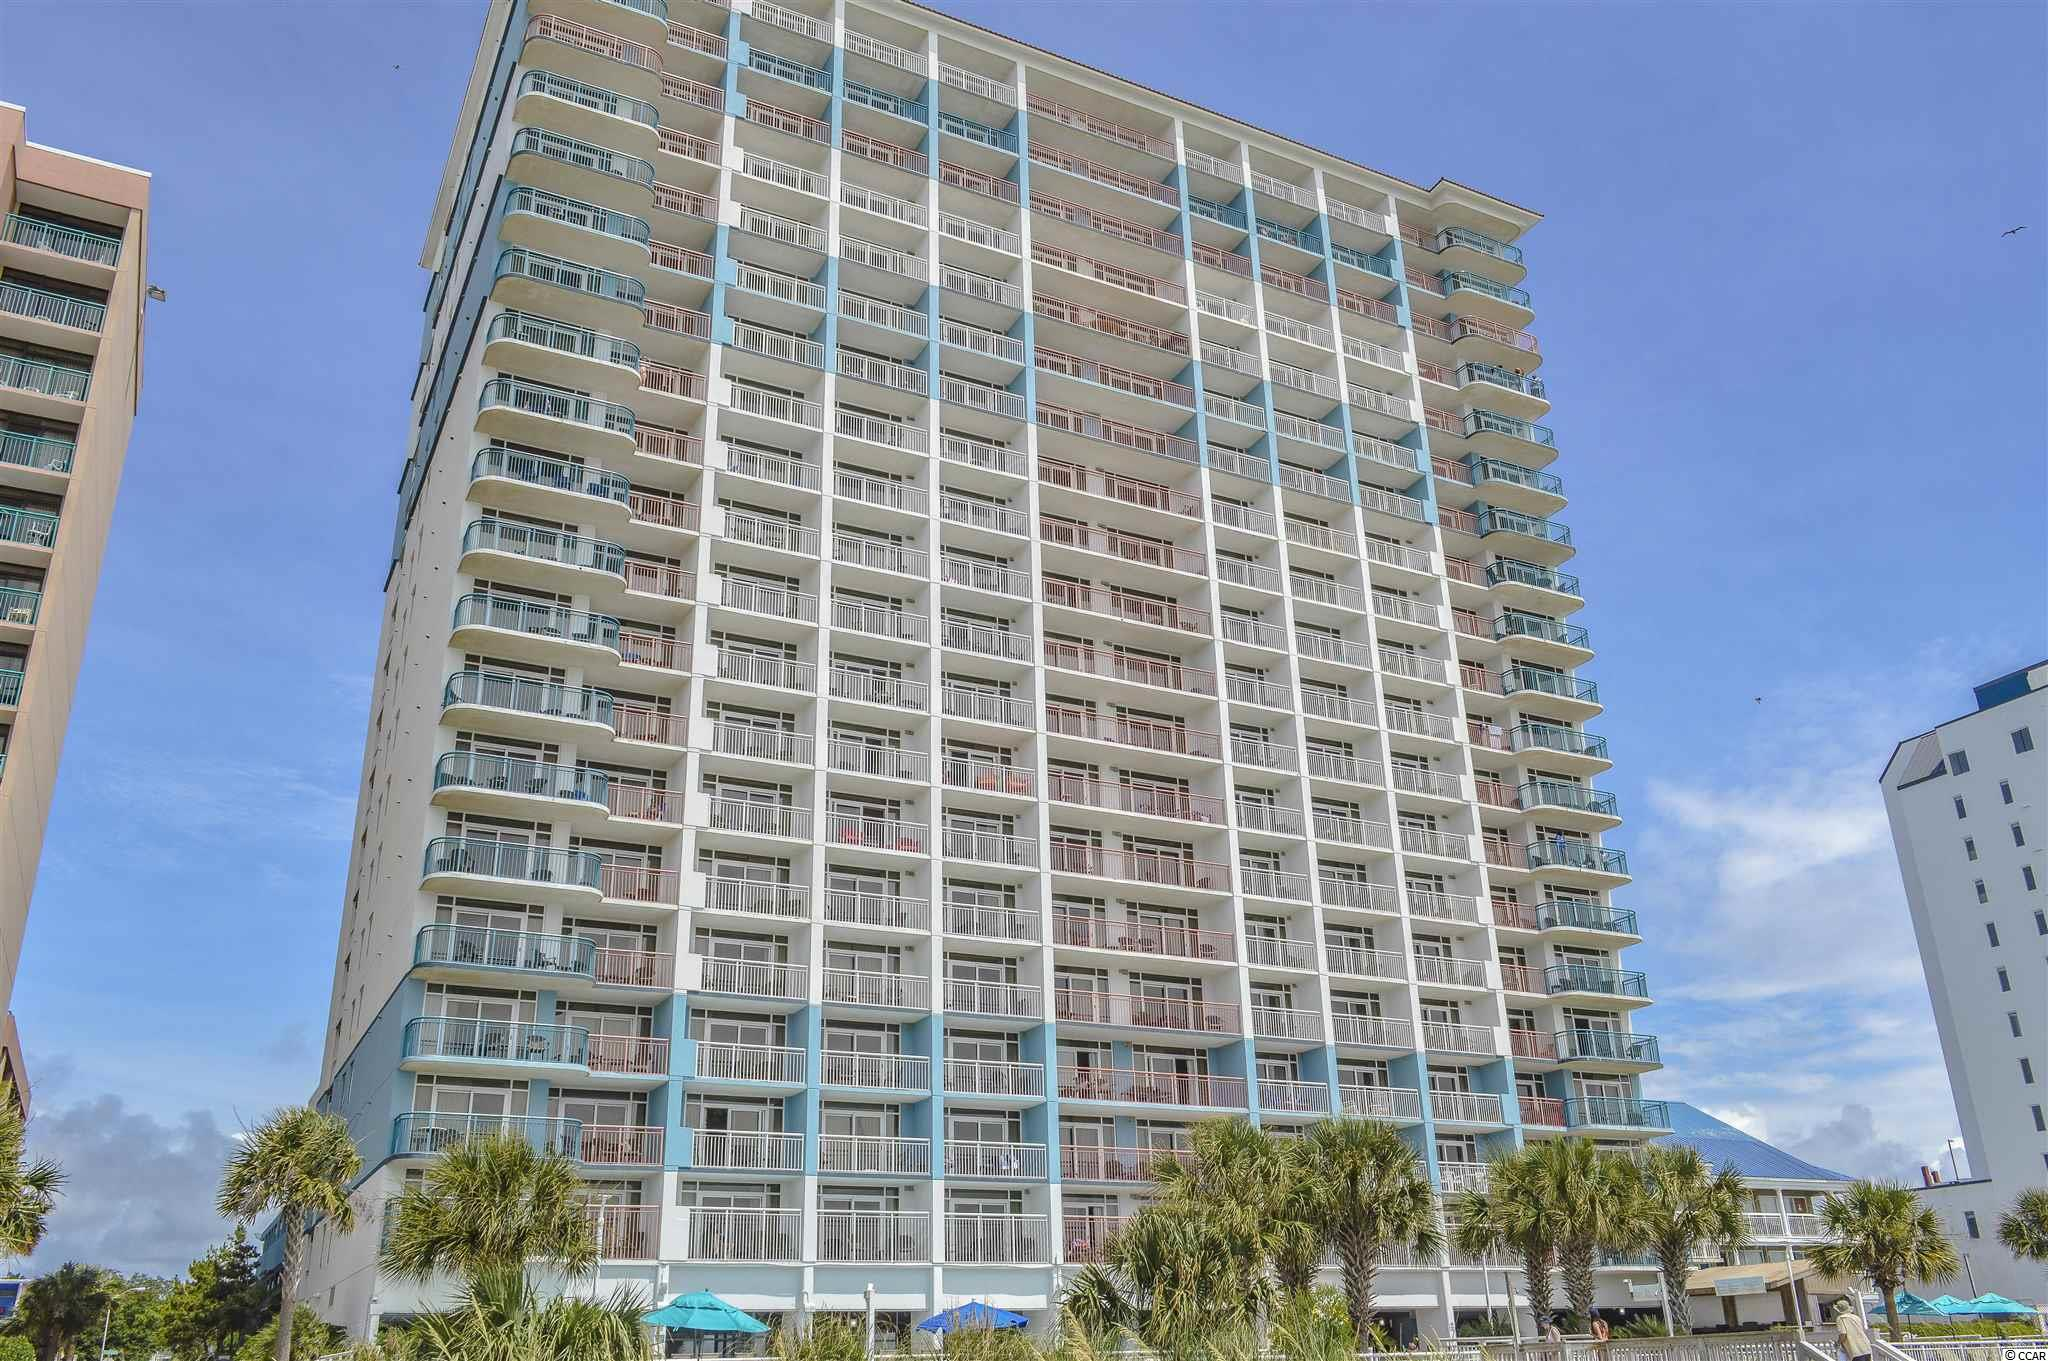 True 1 bedroom DIRECT OCEANFRONT unit for sale at the popular Paradise Resort. Located on S Ocean Blvd in downtown Myrtle Beach - close to family kingdom, the boardwalk, shopping, dining, and a short drive to Market Commons. GREAT LOCATION. Tons of on-site amenities: indoor & outdoor pools, lazy river, hot tubs, tanning deck, fitness center, giant chess, cornhole, sandals restaurant, poolside tiki hut and more! Walking through the front door of the unit you enter into a foyer with the bedroom on the left - complete with two beds, closet, flat screen TV and overhead ceiling fan. Laundry/utility closet off hallway features stackable washer/dryer. Full bathroom is equipped with a single sink bowl vanity and large garden tub. Galley style kitchen has a full set of appliances (owner has ordered a NEW fridge & range), granite countertops, small breakfast bar and plenty of cabinet space. Large open living area features unbeatable views of the oceanfront and garners lots of natural light from the sliding door balcony access. Living room has crown molding, flat screen tv, overhead ceiling fan, pull out sleeper sofa, murphy bed, and dining room area. Private oceanfront balcony overlooks the outdoor pool and white sands of Myrtle Beach. Unit is priced to sell and won't last long - schedule your private showing on this piece of beach paradise today!